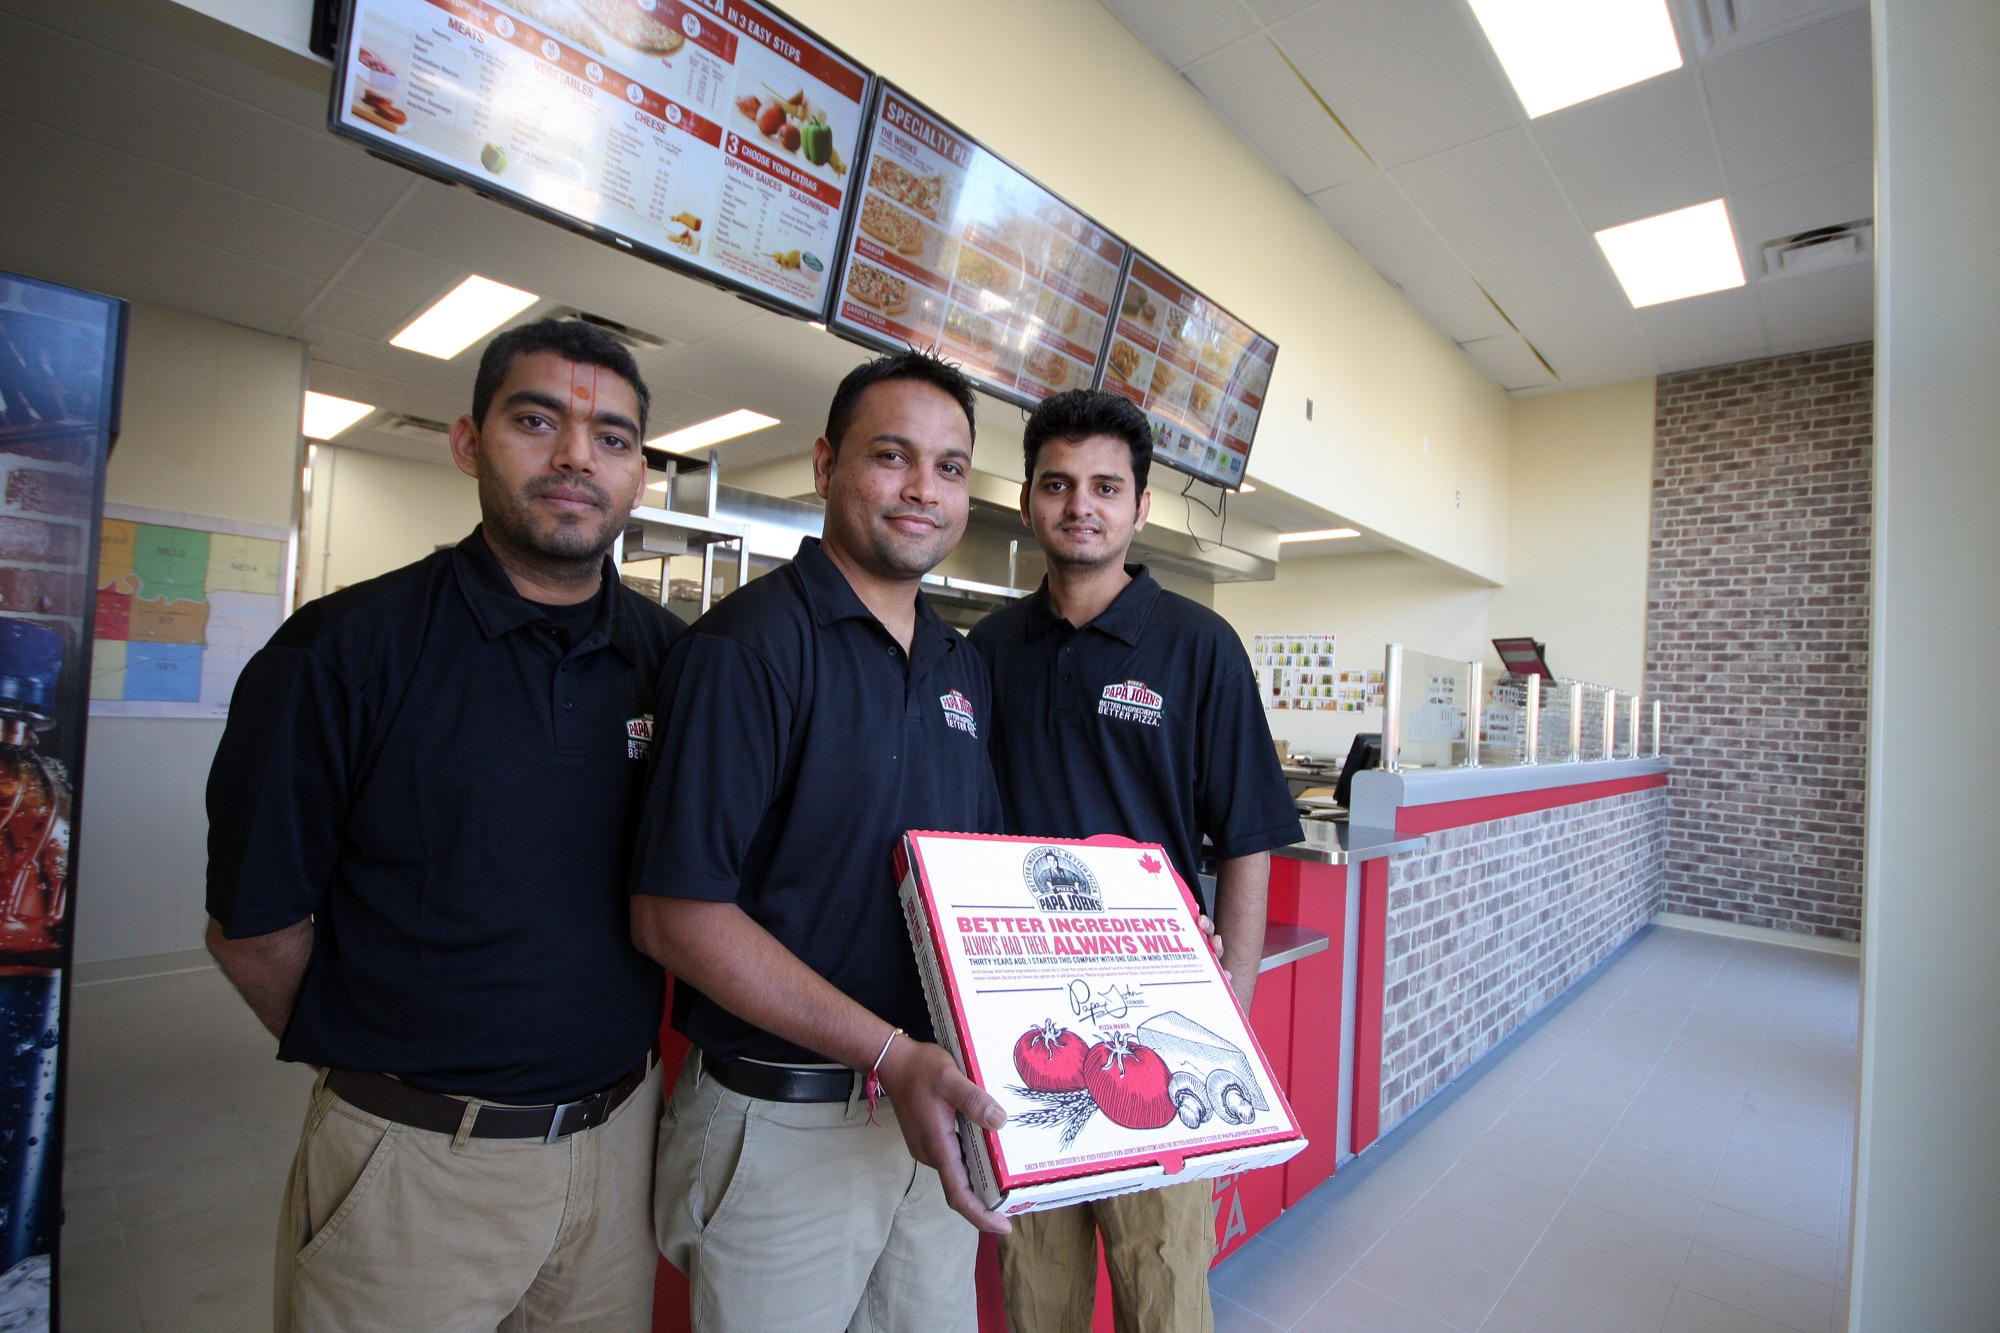 Brandon Papa John's Pizza franchise owners, from left, Gary, Parth and Prakash Patel (no relation) are seen in their new space, at the strip mall located at the northeast corner of the Rosser Avenue and 18th Street intersection.